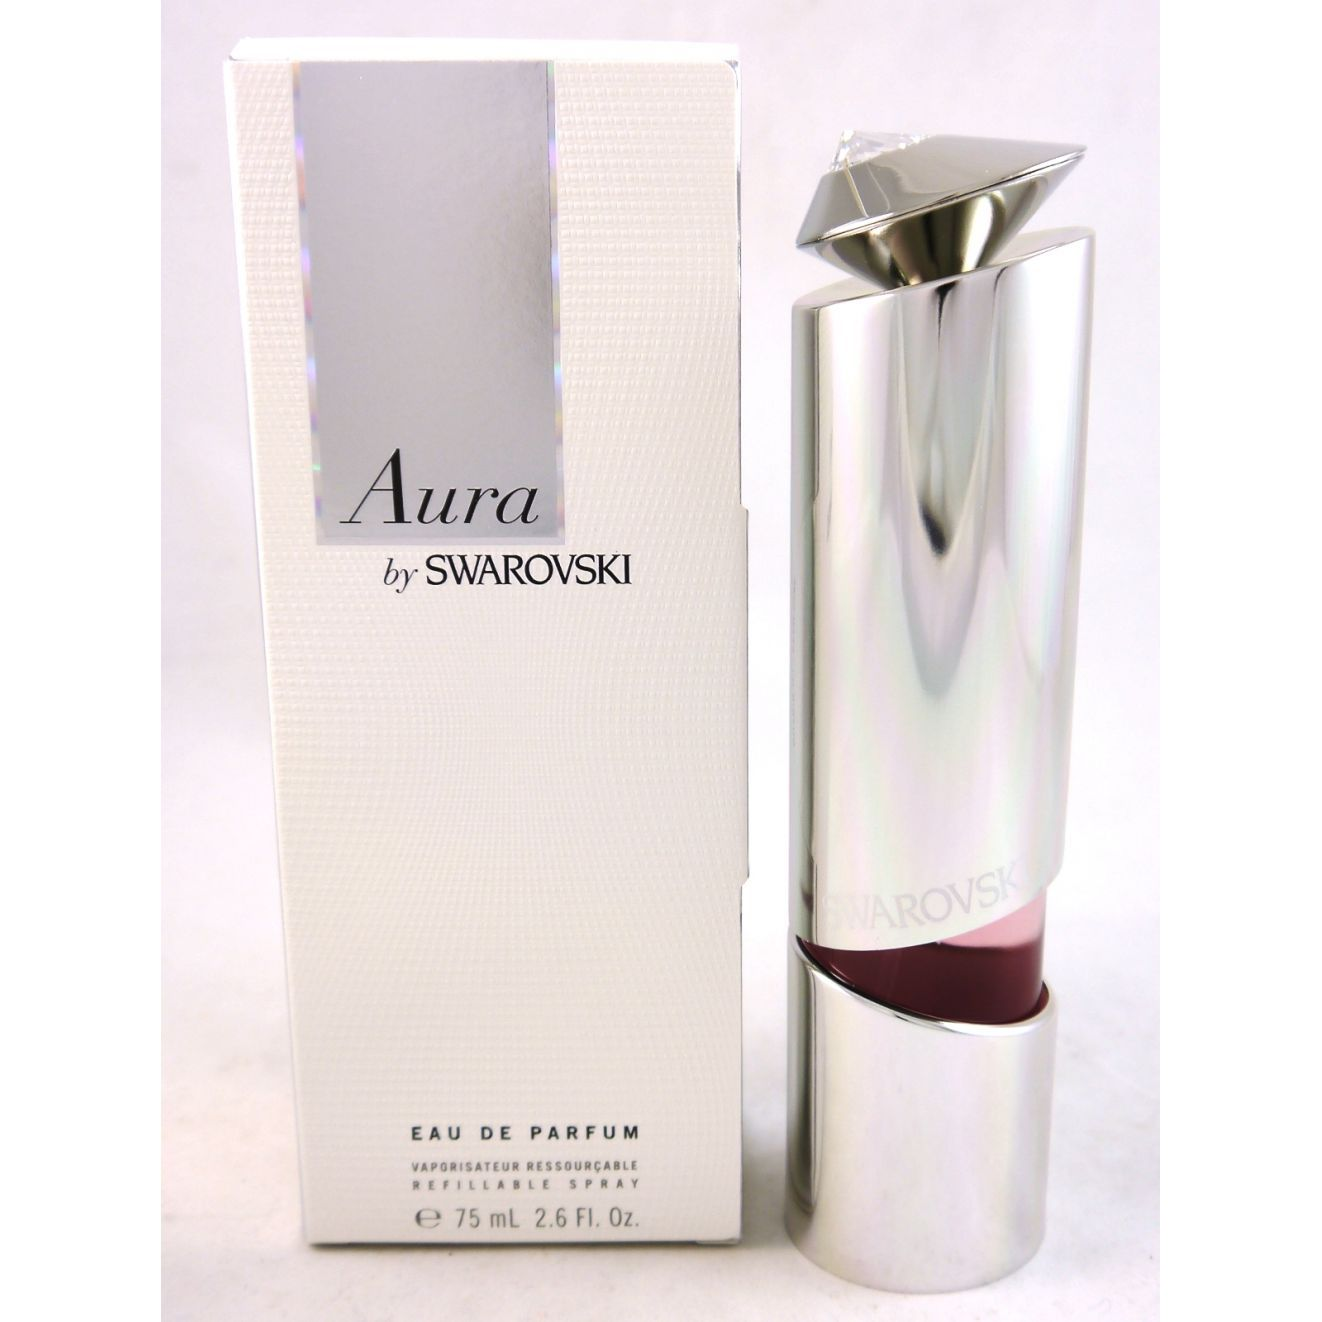 Aura by Swarovski 75 ml Eau de Parfum EDP Spray nachfüllbar refillable